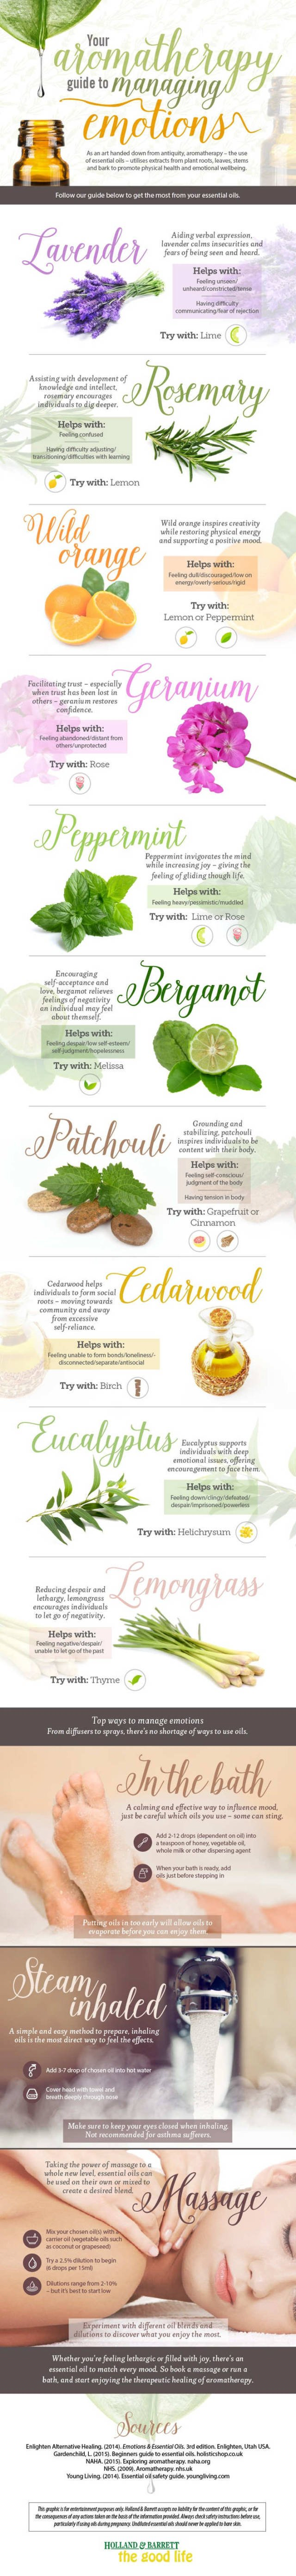 Support your Emotional Health using Aromatherapy